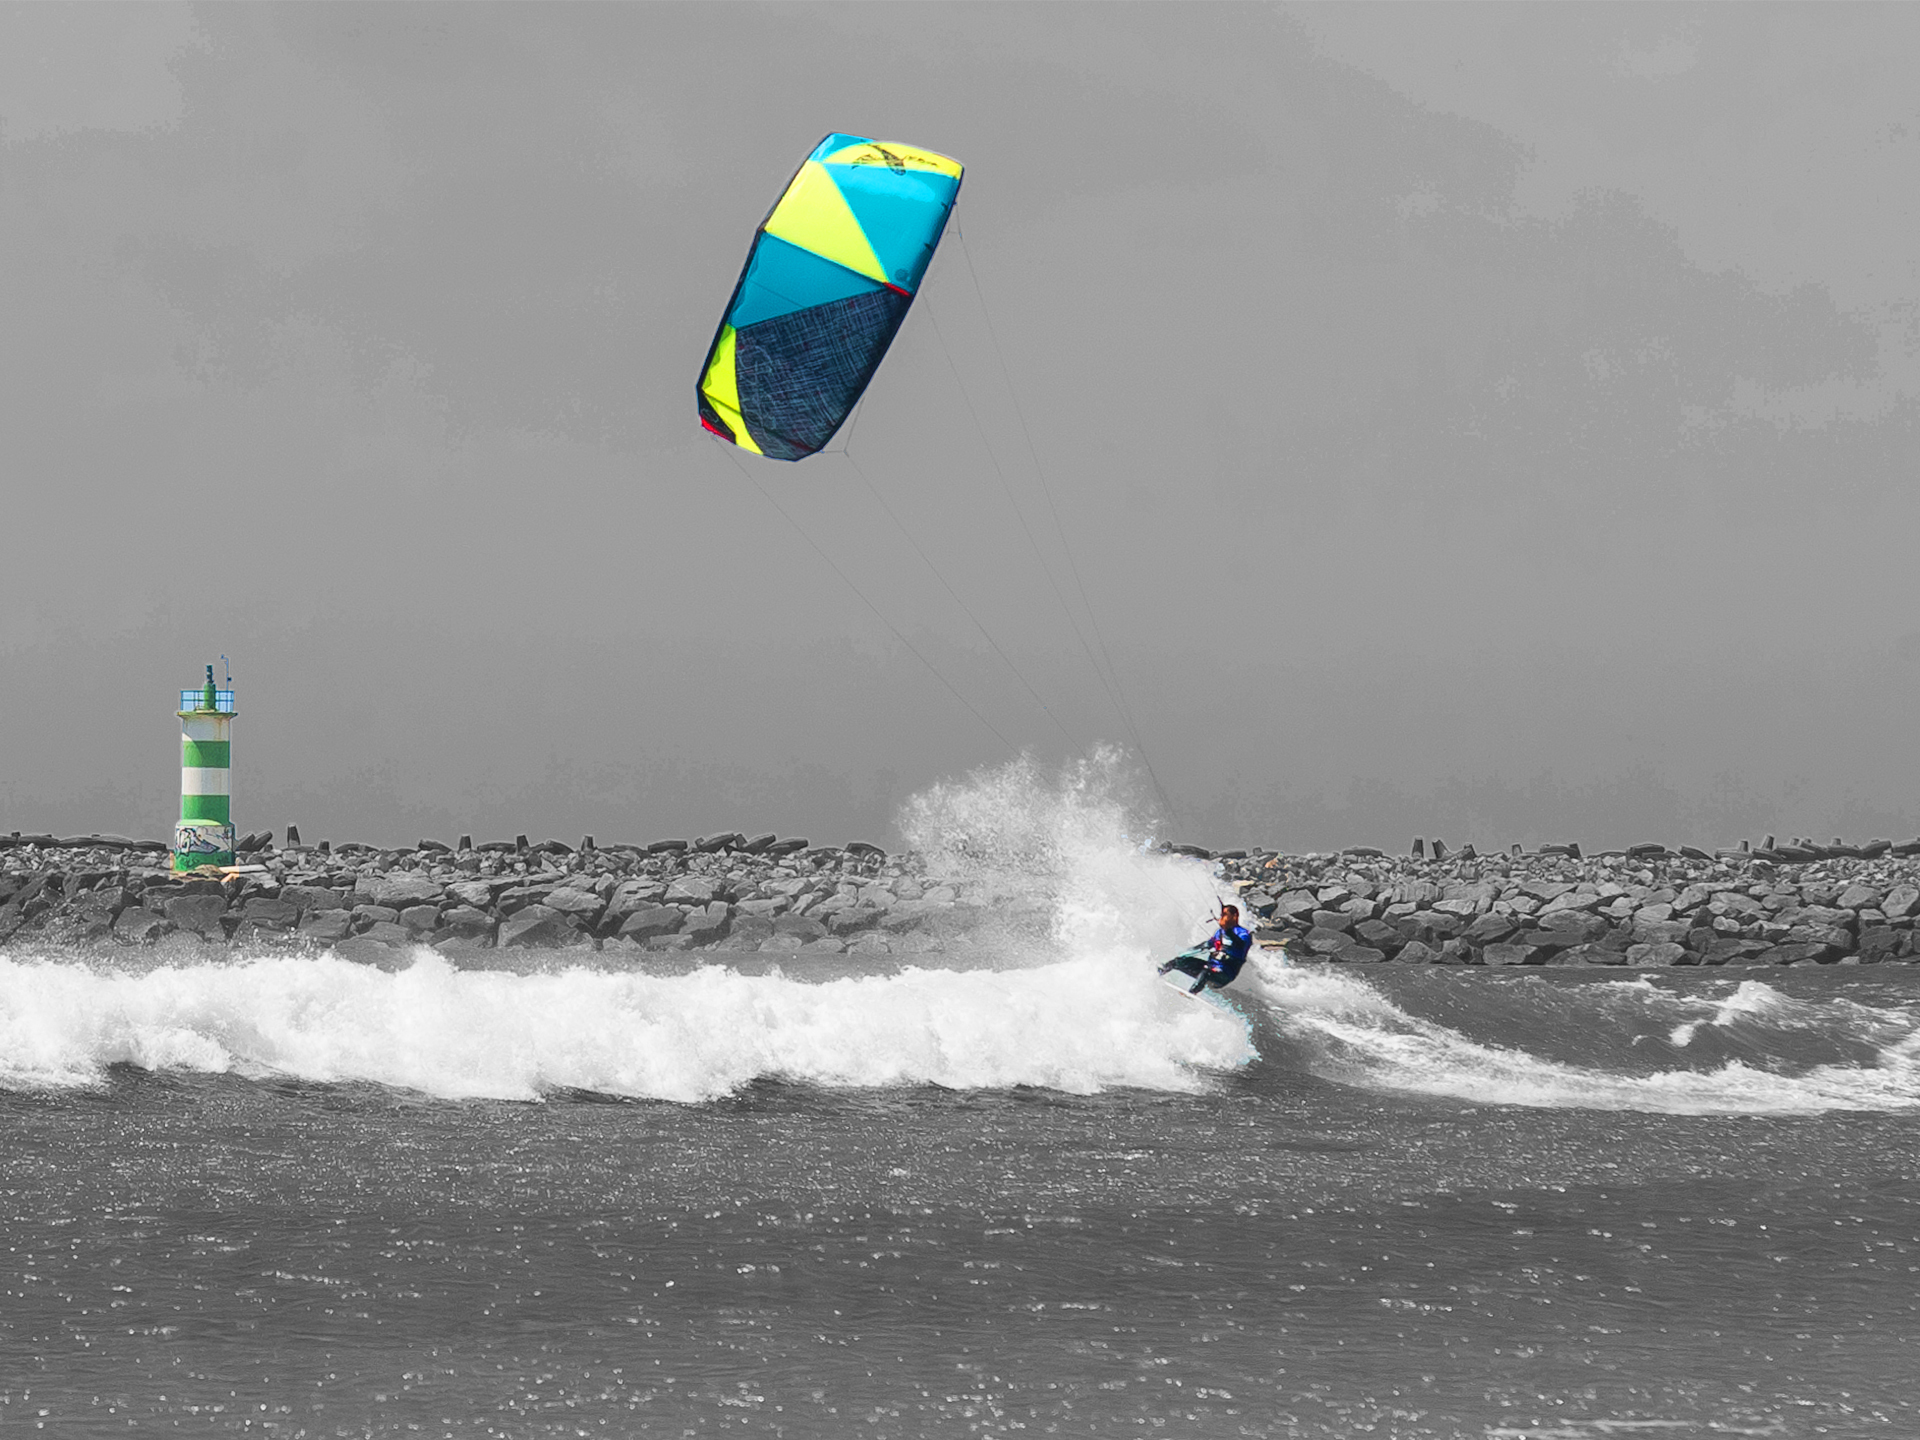 kitesurf wallpaper image - Giving the 2015 Best Cabo kite a thrashing in the waves - in resolution: Standard 4:3 1920 X 1440